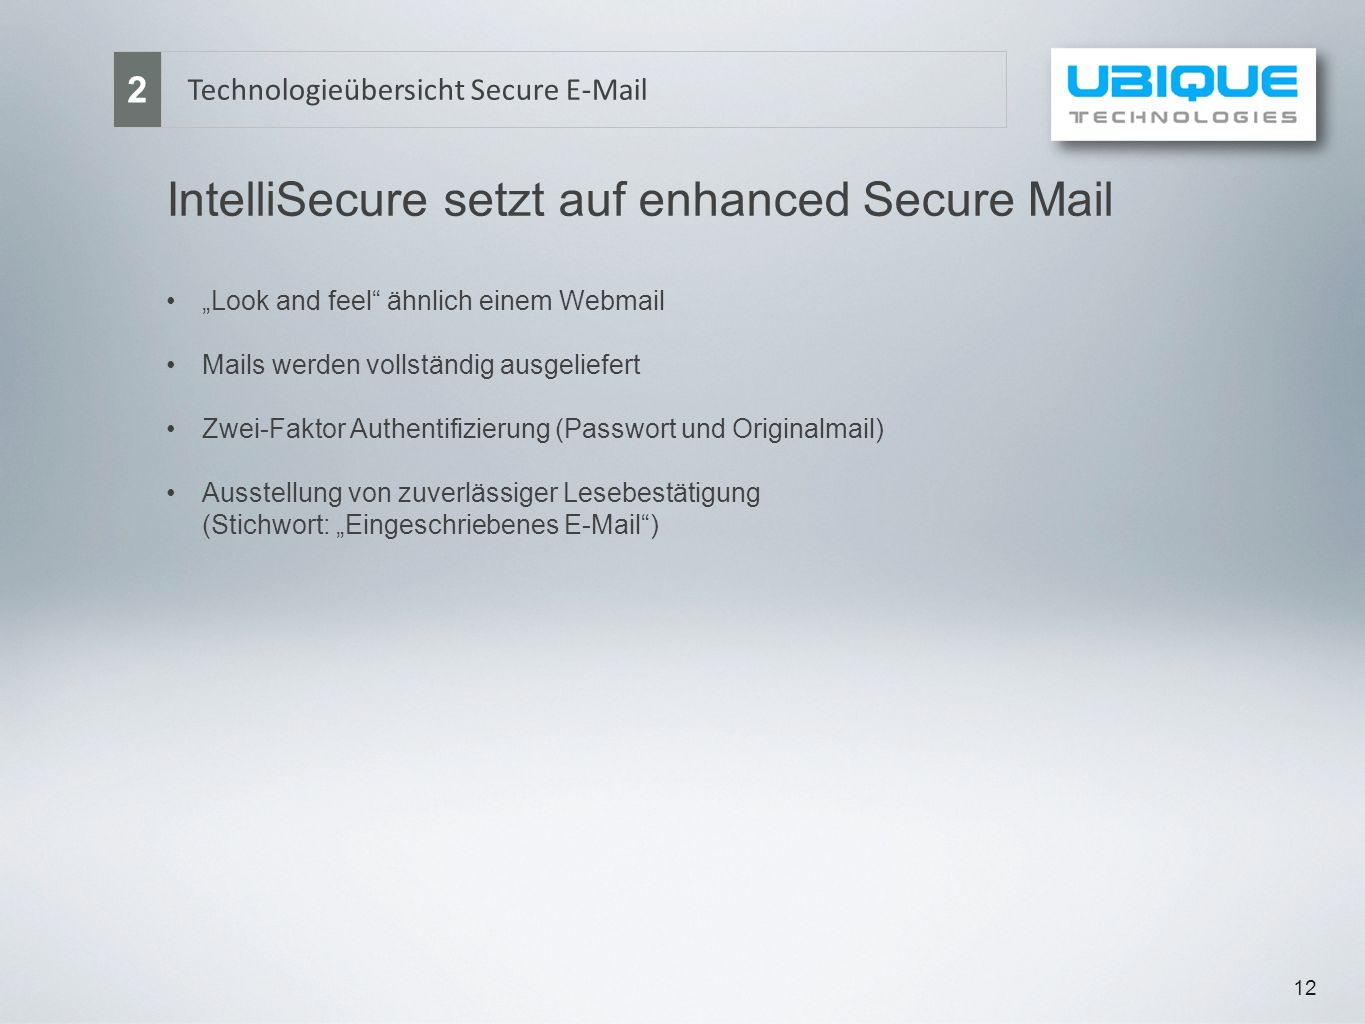 IntelliSecure setzt auf enhanced Secure Mail